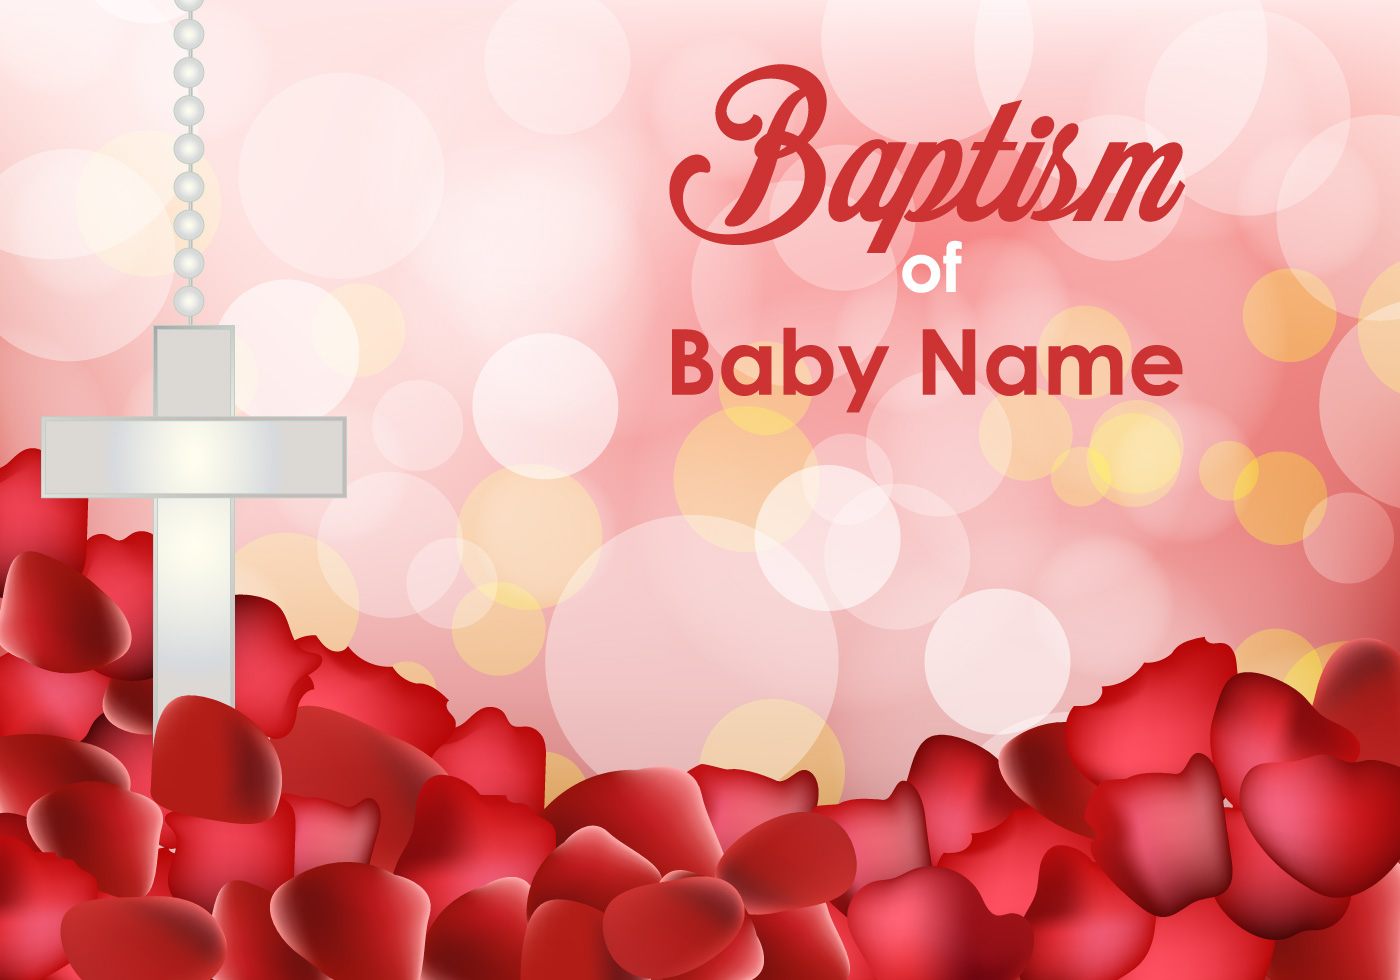 Baptism Invitation Templates - Download Free Vector Art, Stock ...